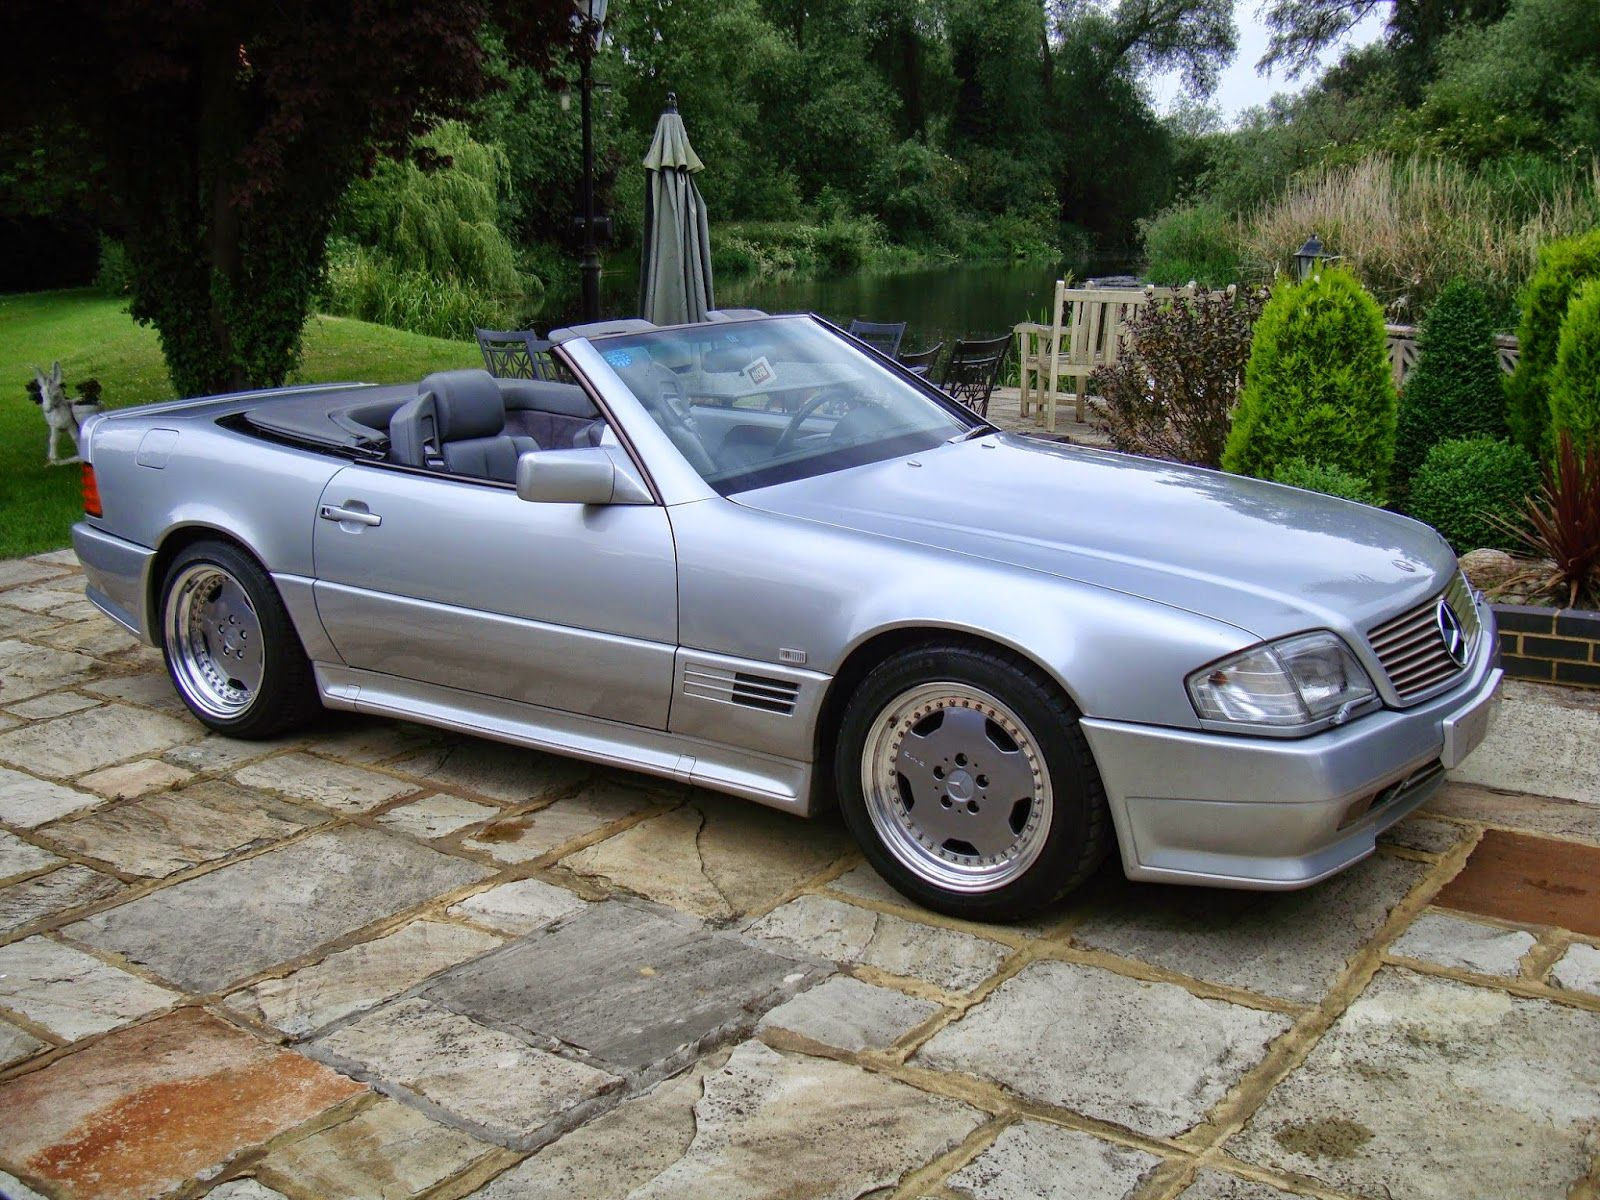 Mercedes Benz R129 Sl500 6 0 Amg With Images Mercedes Benz